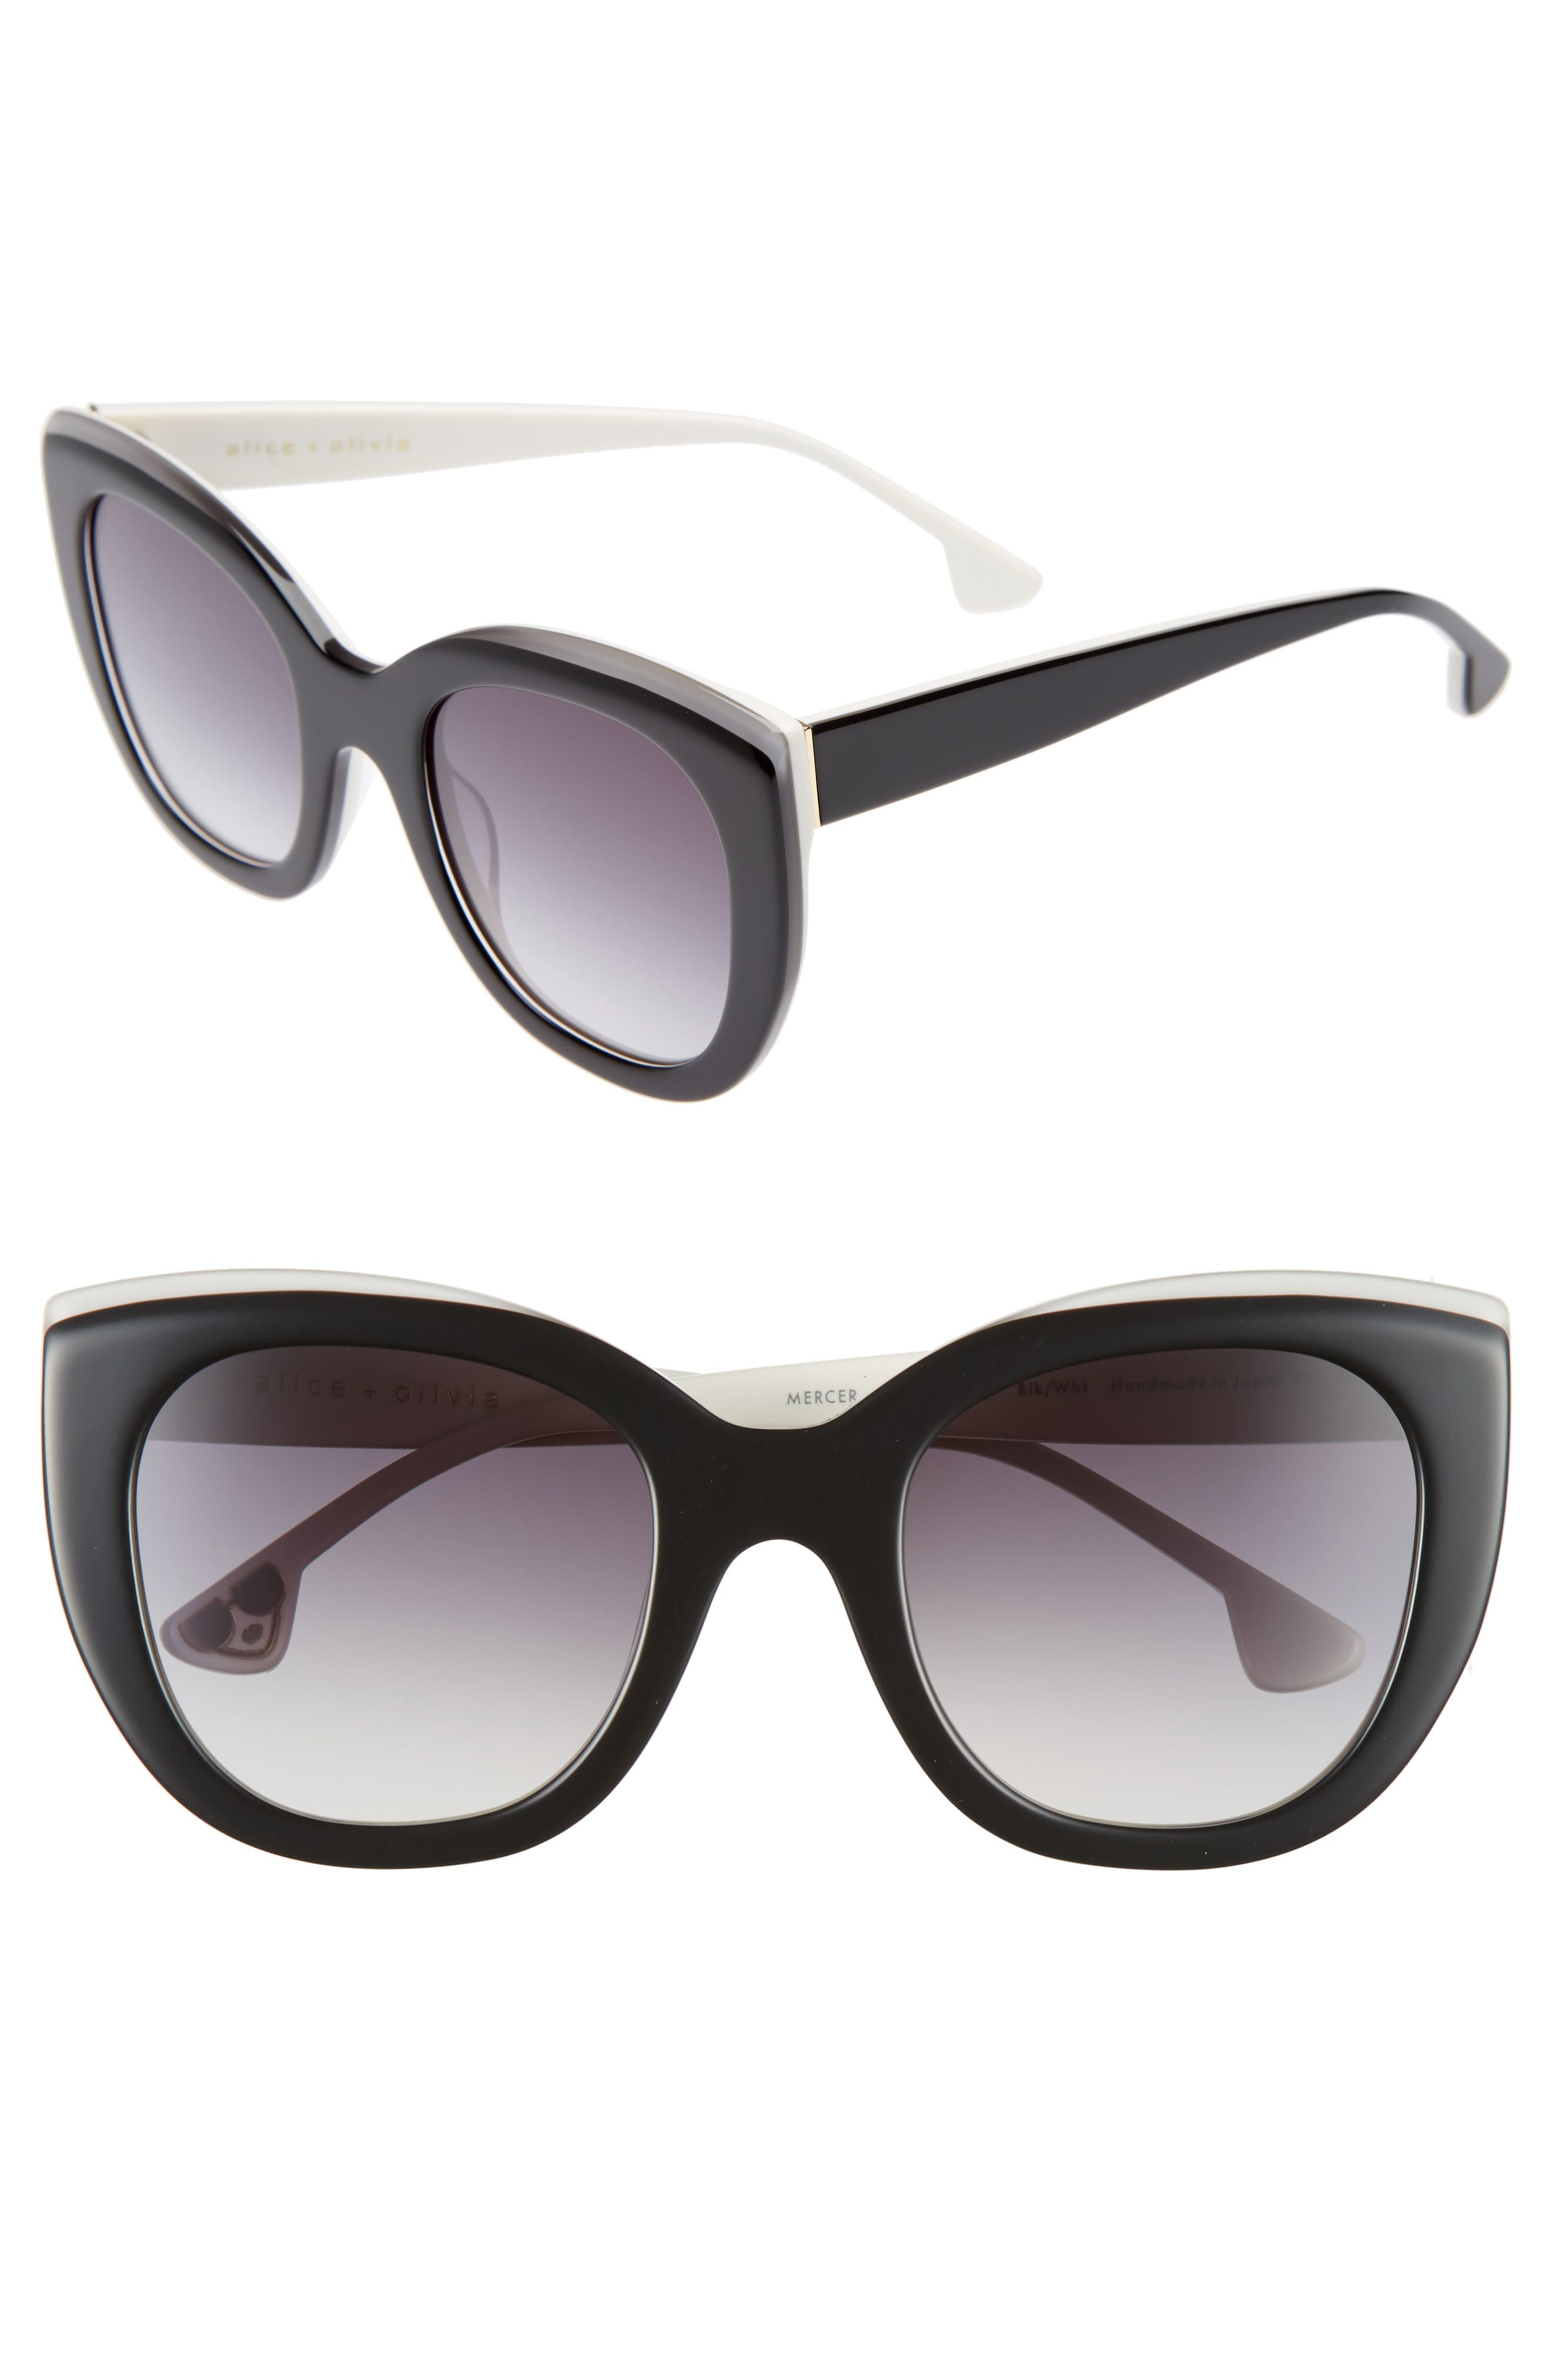 Mercer 52mm Cat Eye Sunglasses,                         Main,                         color,